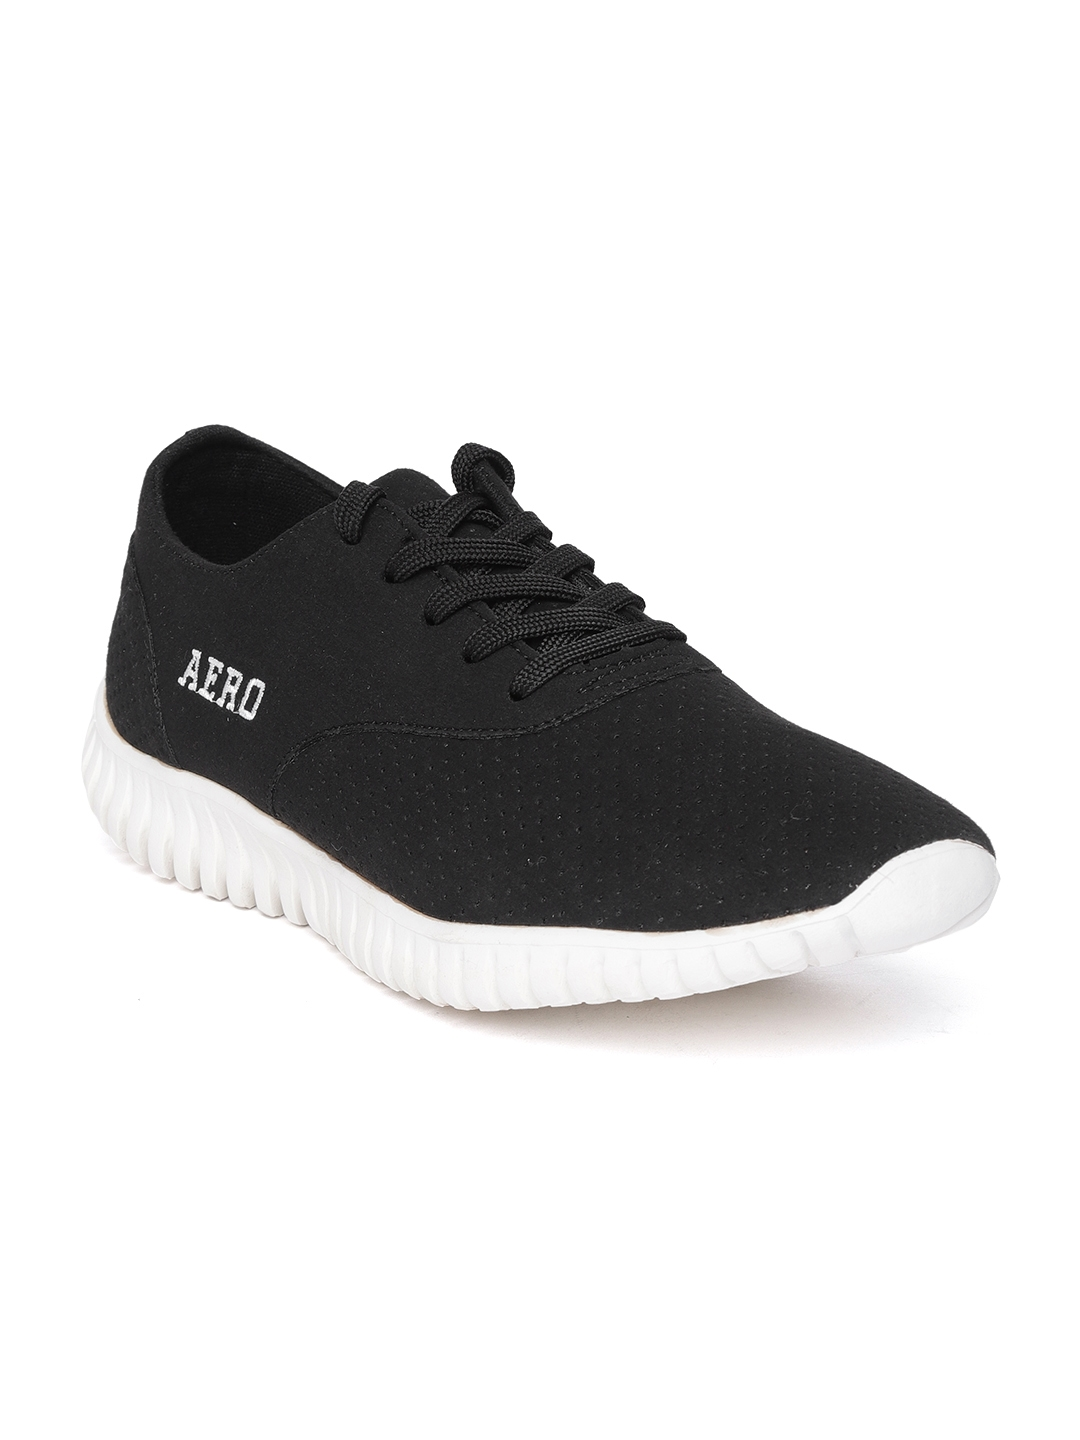 Perforated Sneakers - Casual Shoes